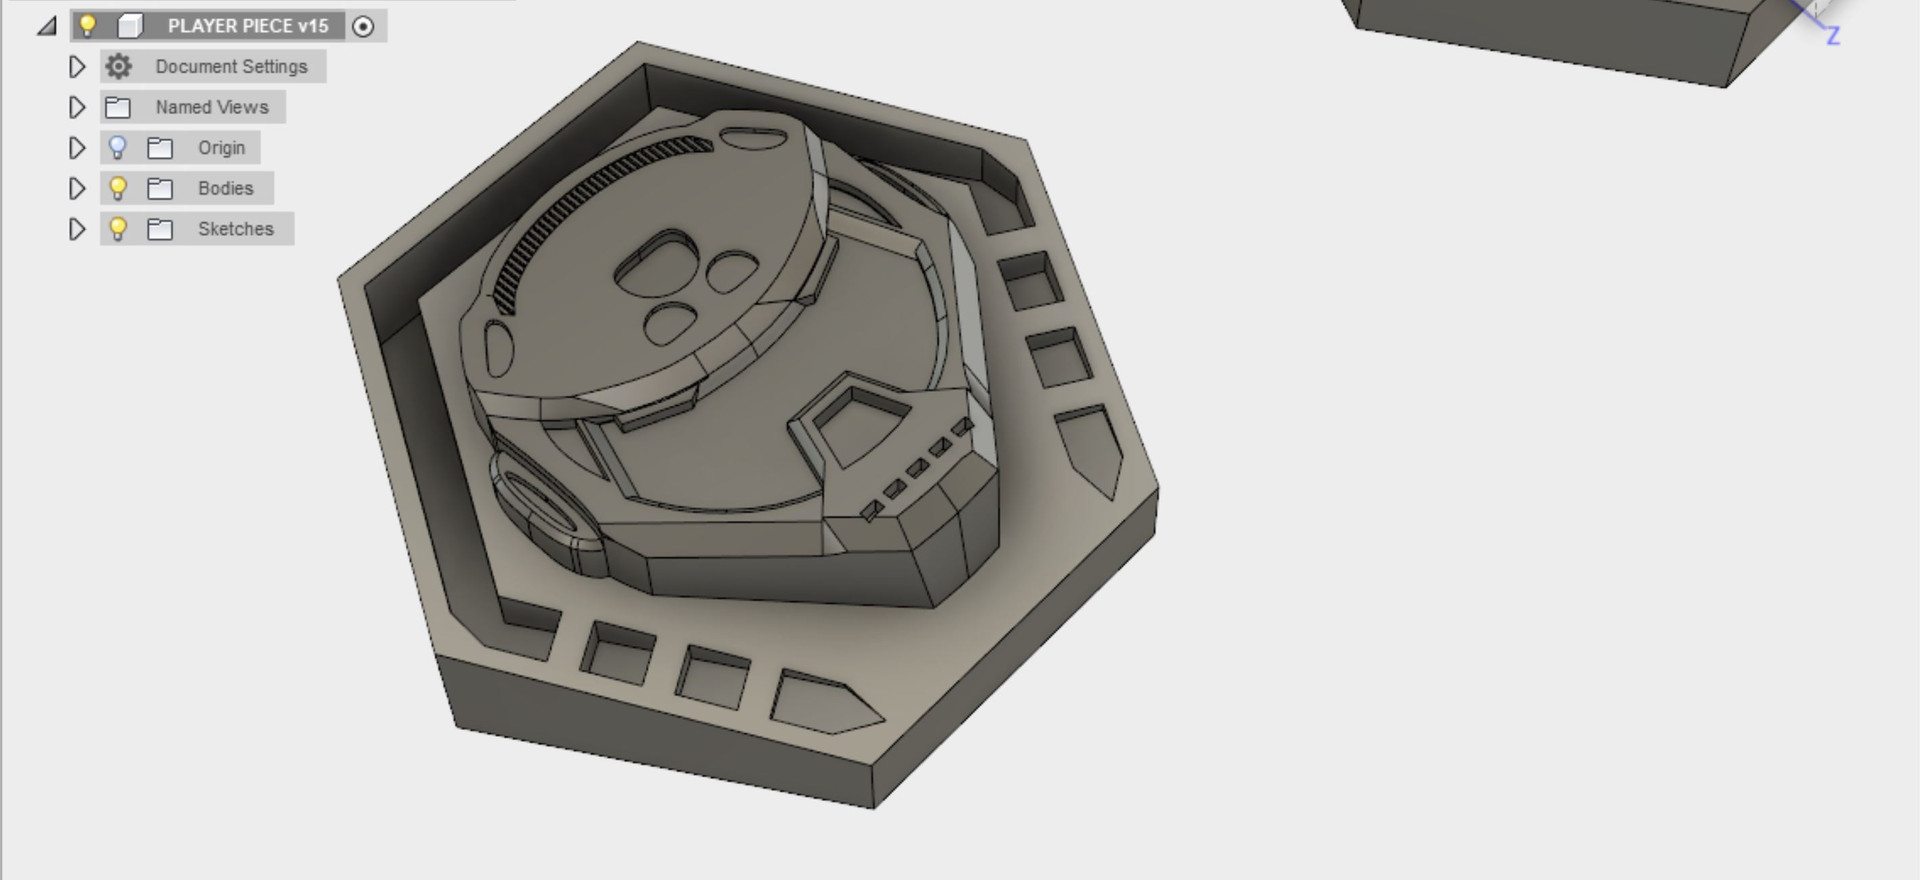 After the final design was selected, it was then further processed with more details with the intention for printing on SLA.